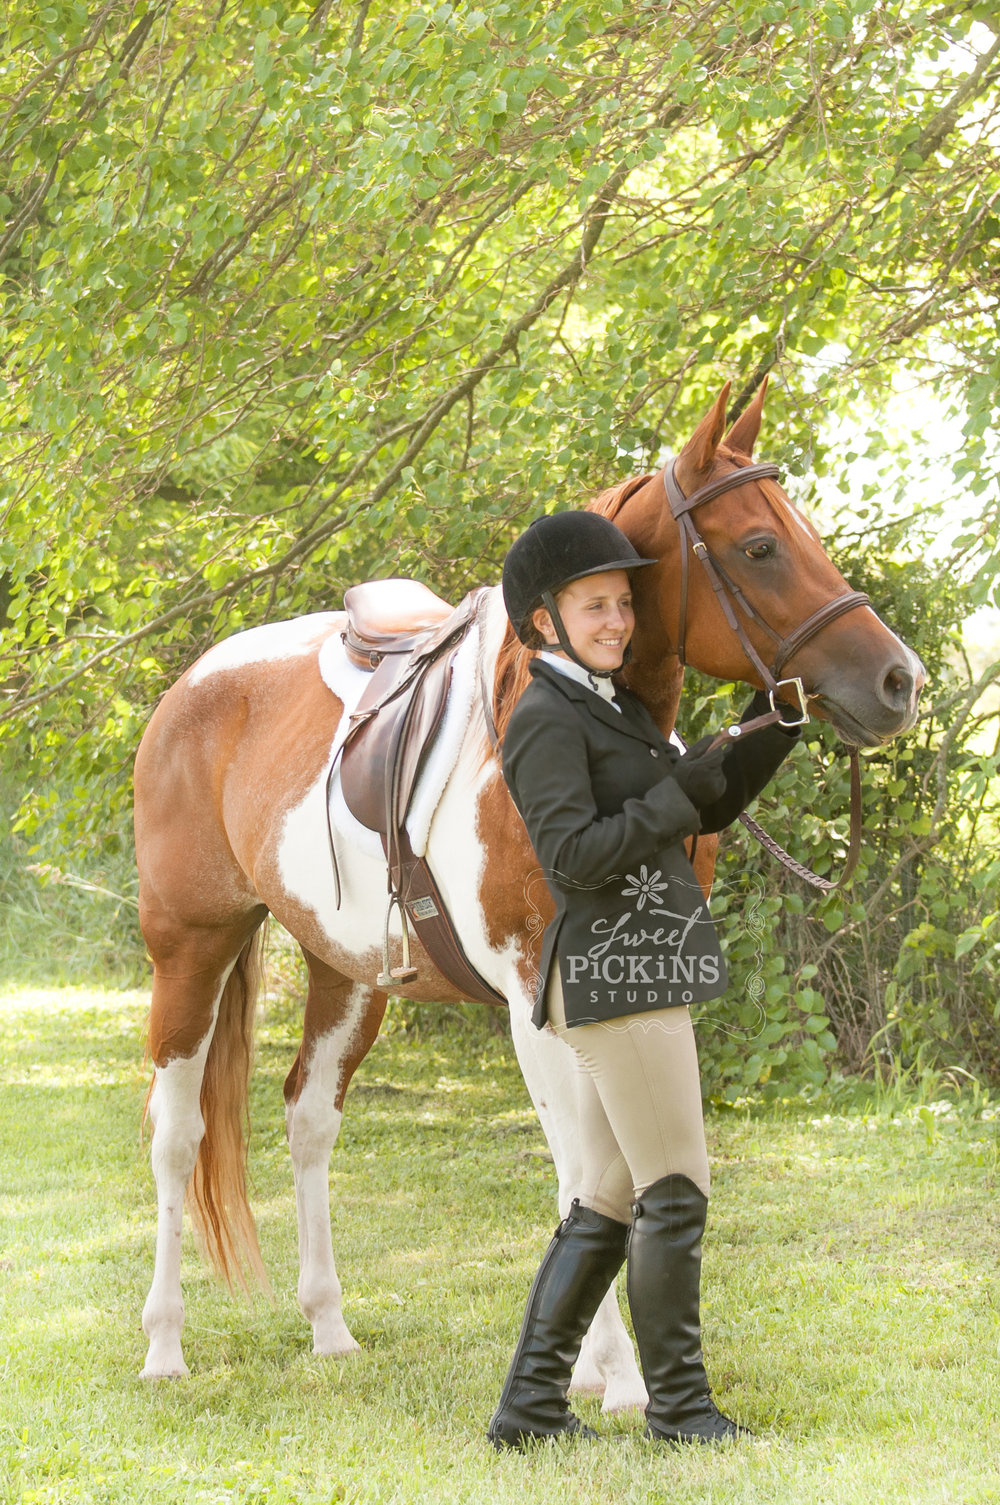 Equestrian Horse Portrait Photographer | Sweet Pickins Studio of Peru, IN